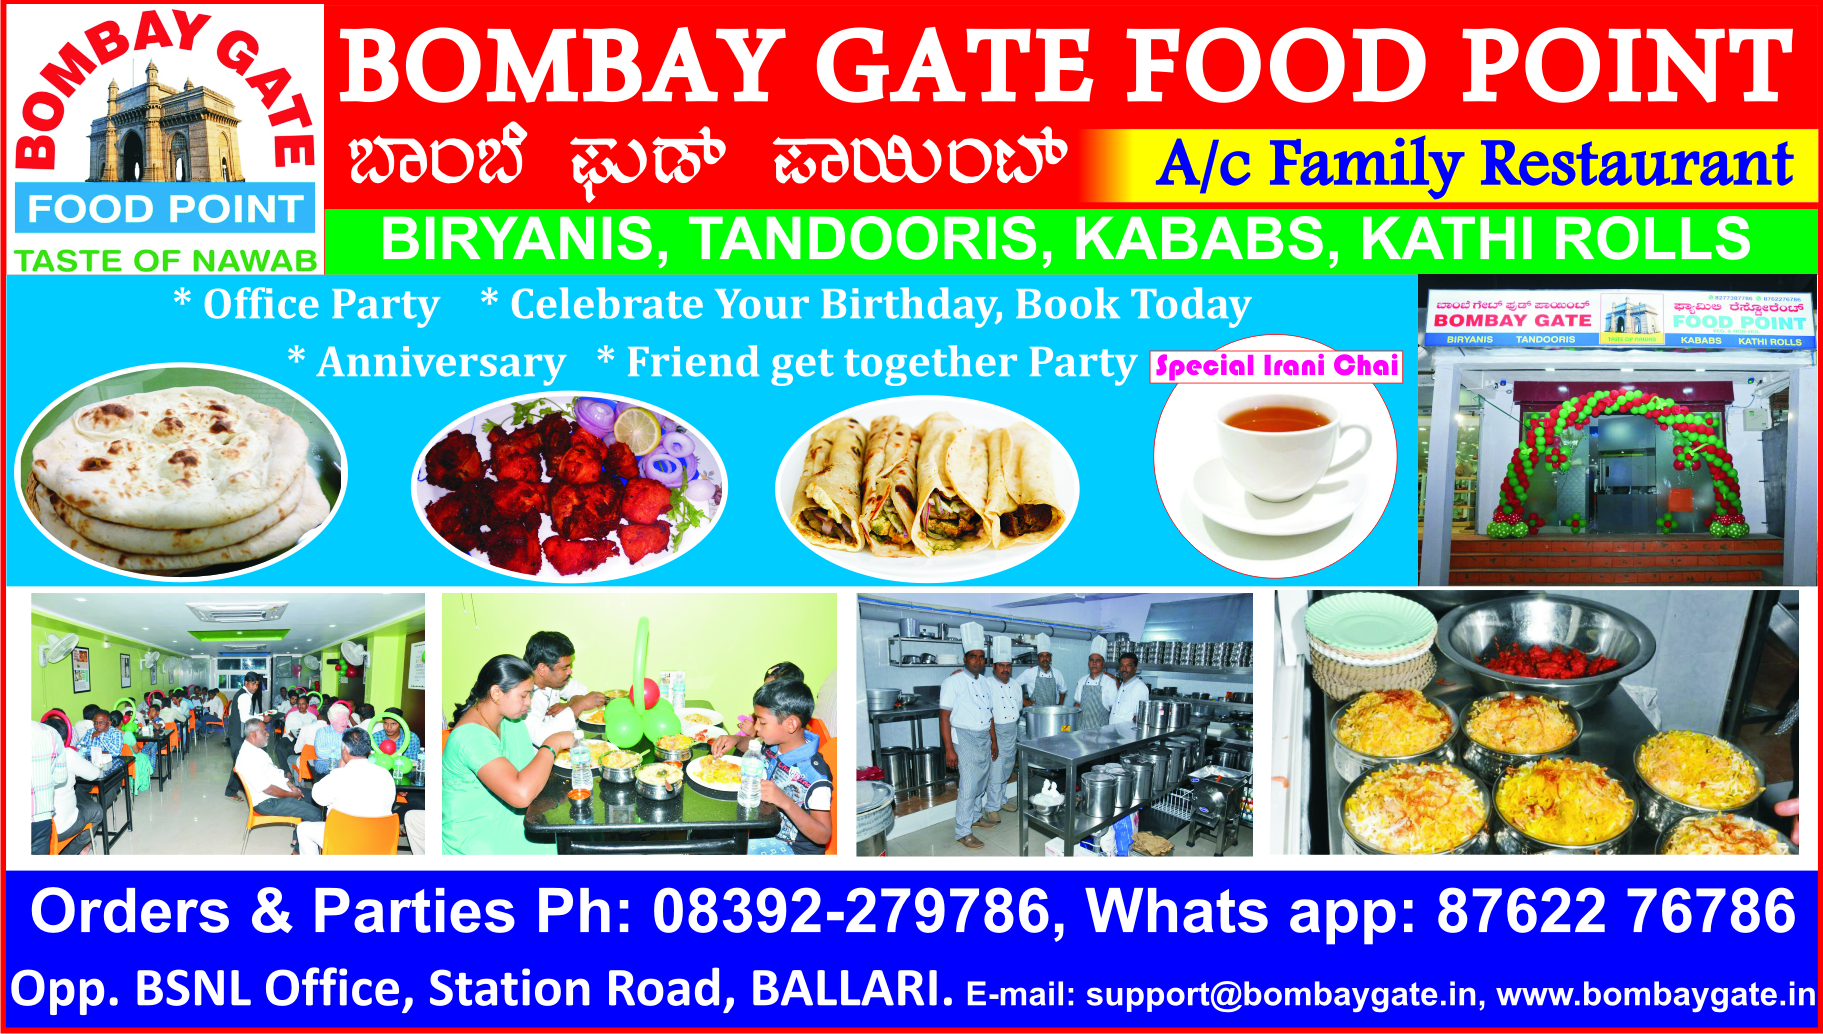 BOMBAY GATE FOOD POINT